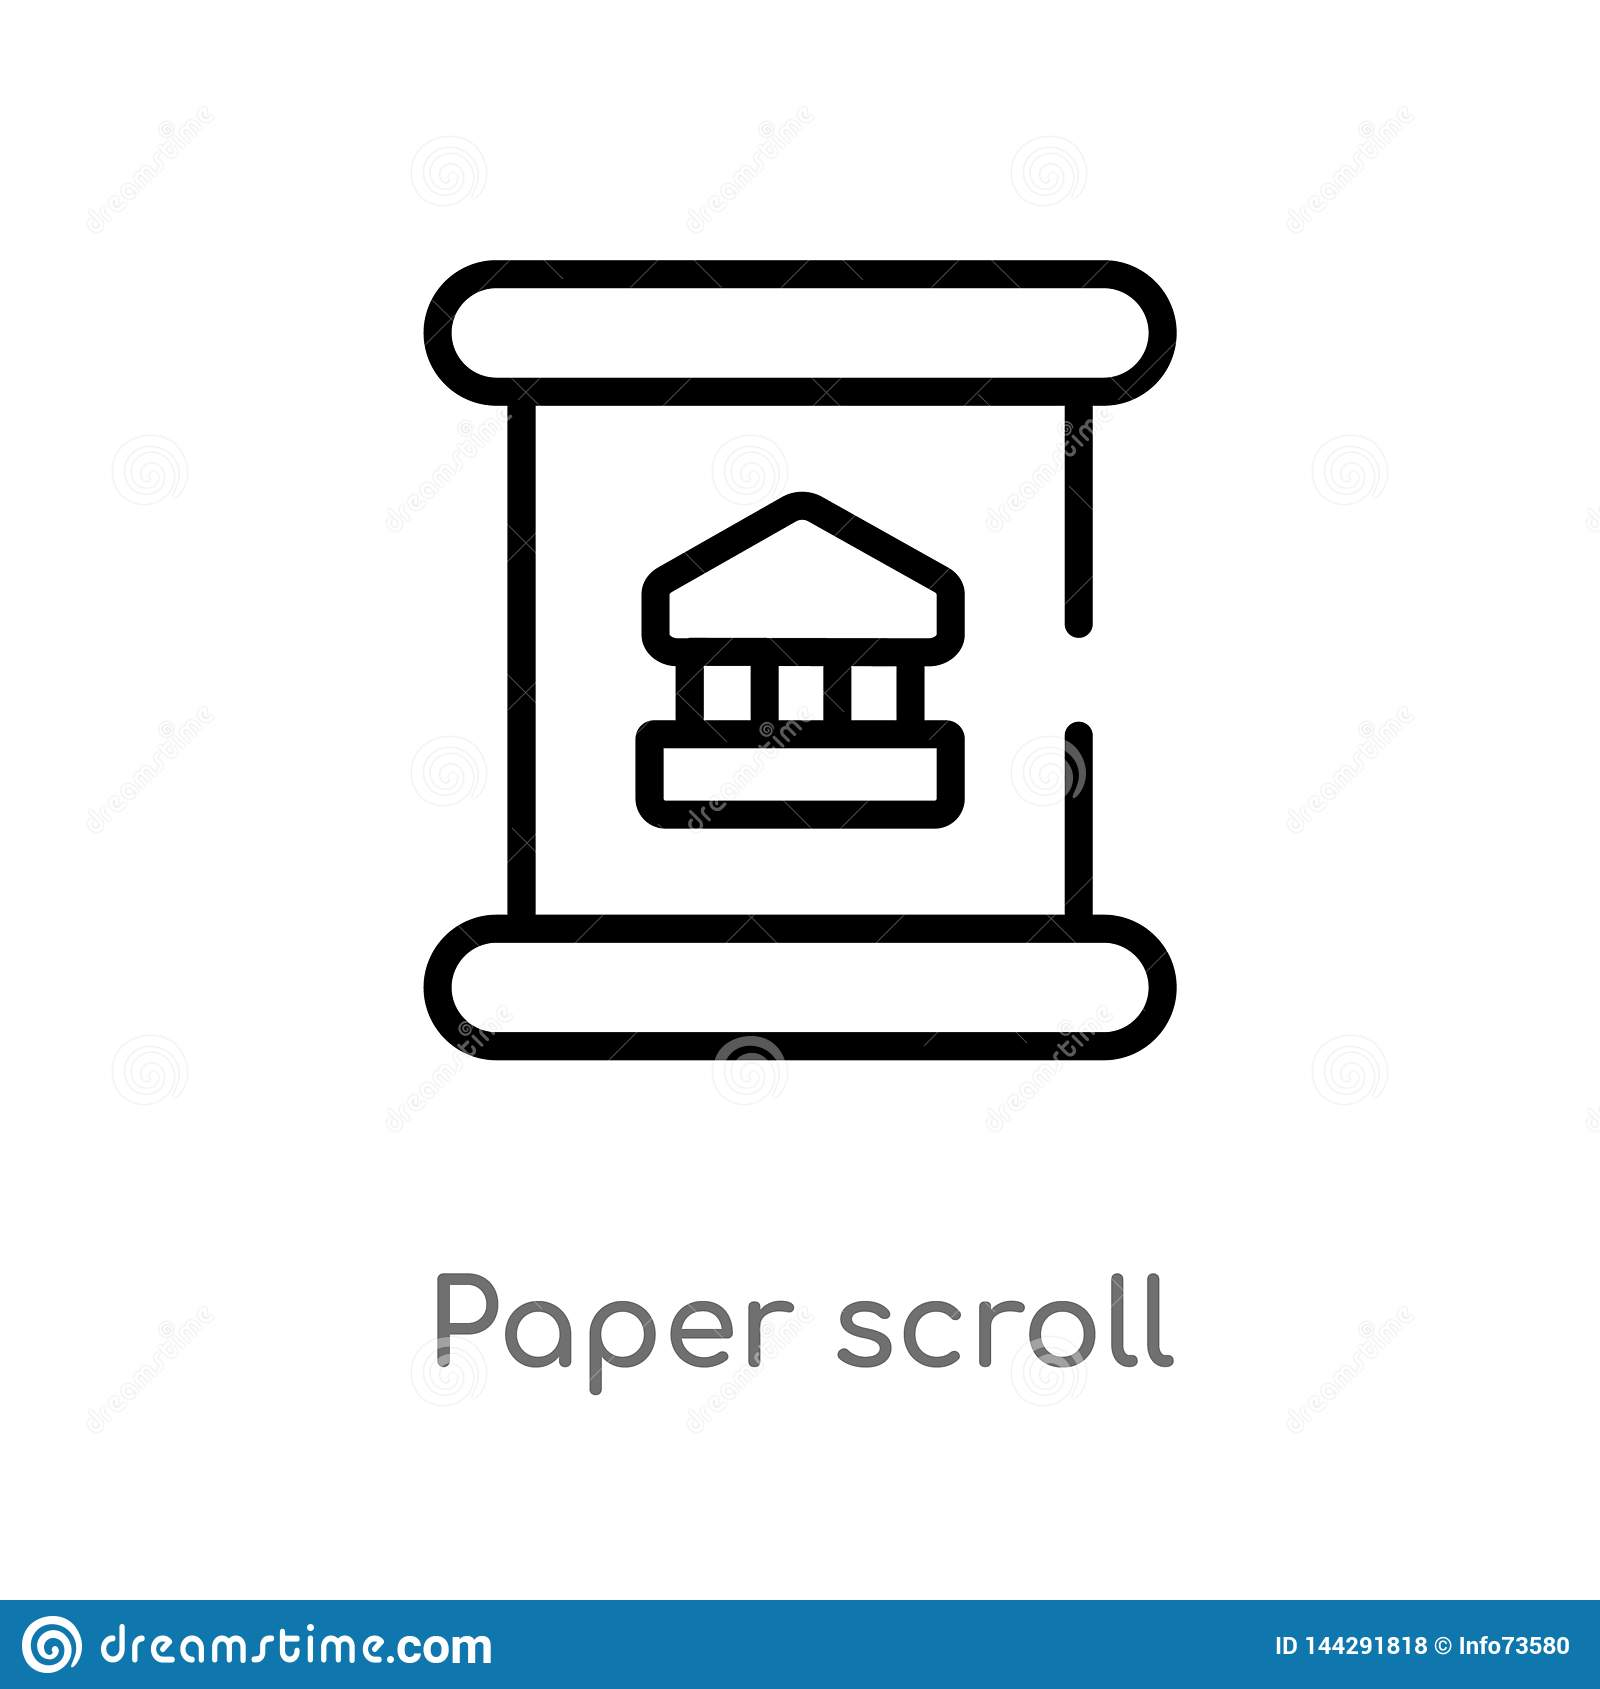 Outline Paper Scroll Vector Icon  Isolated Black Simple Line Element